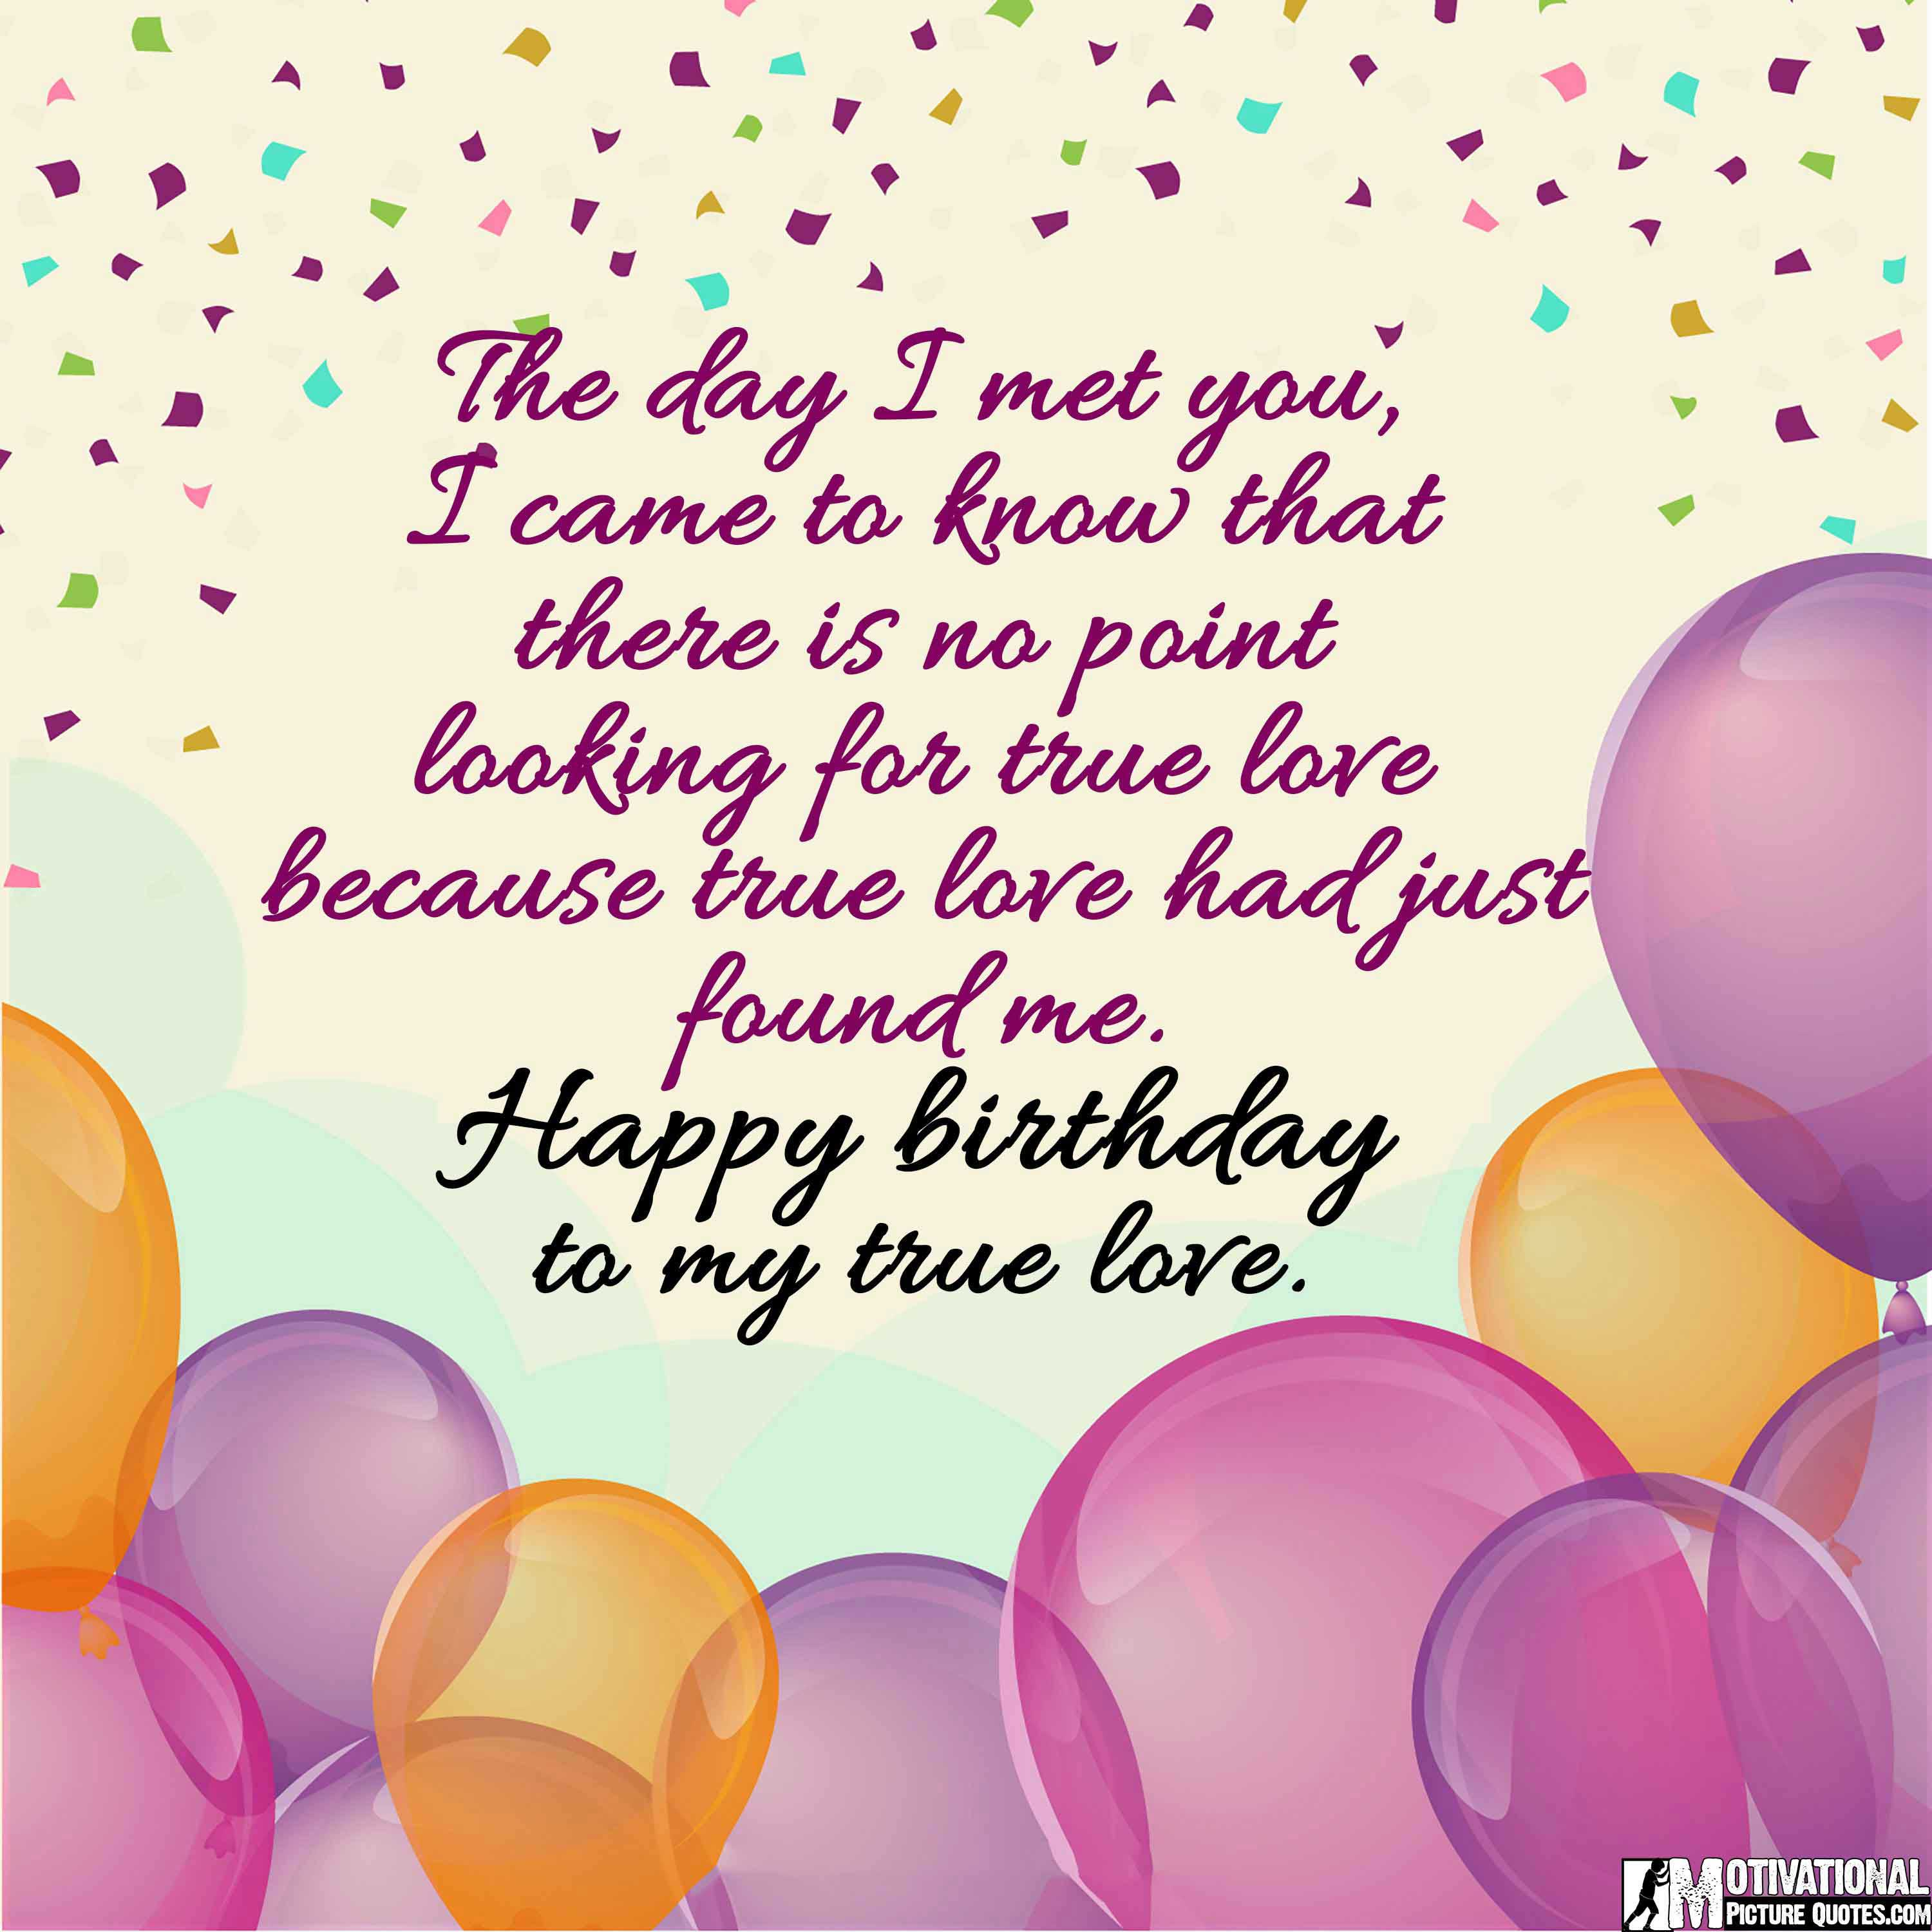 35+ Inspirational Birthday Quotes Images   Insbright